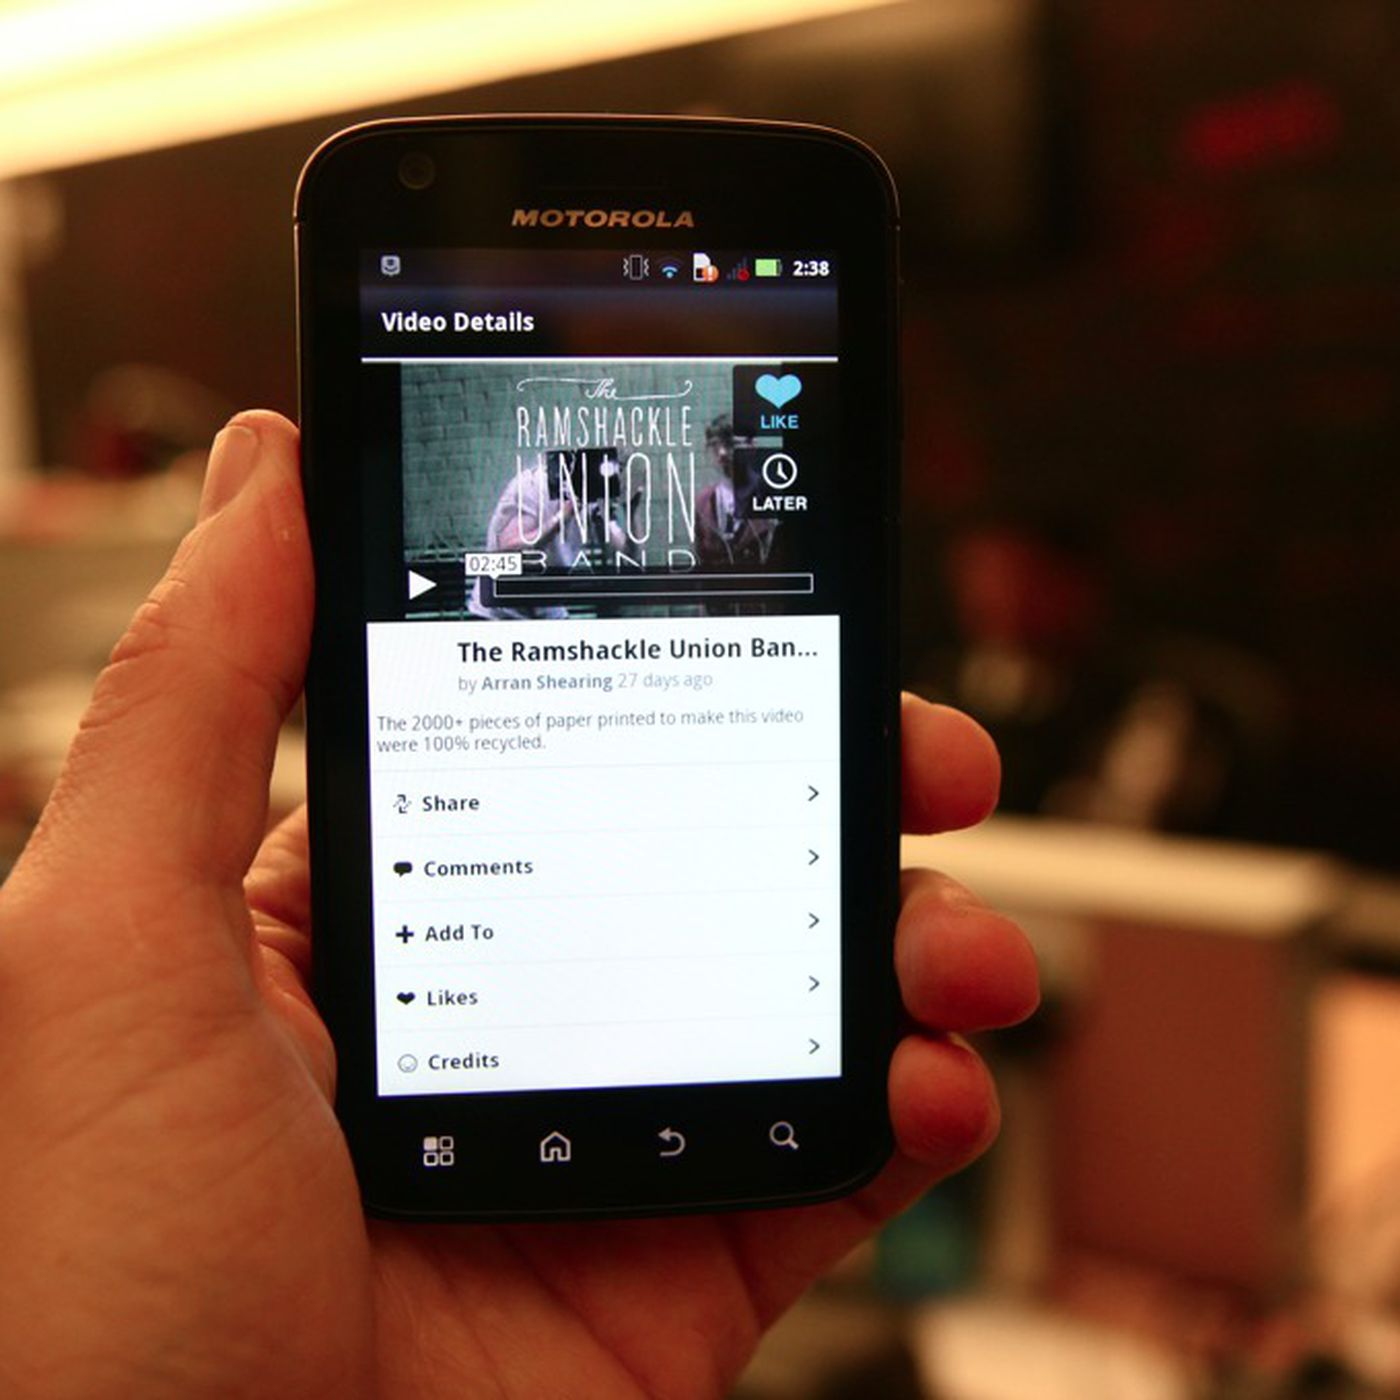 Vimeo apps come to Android, Windows Phone, Kindle Fire - The